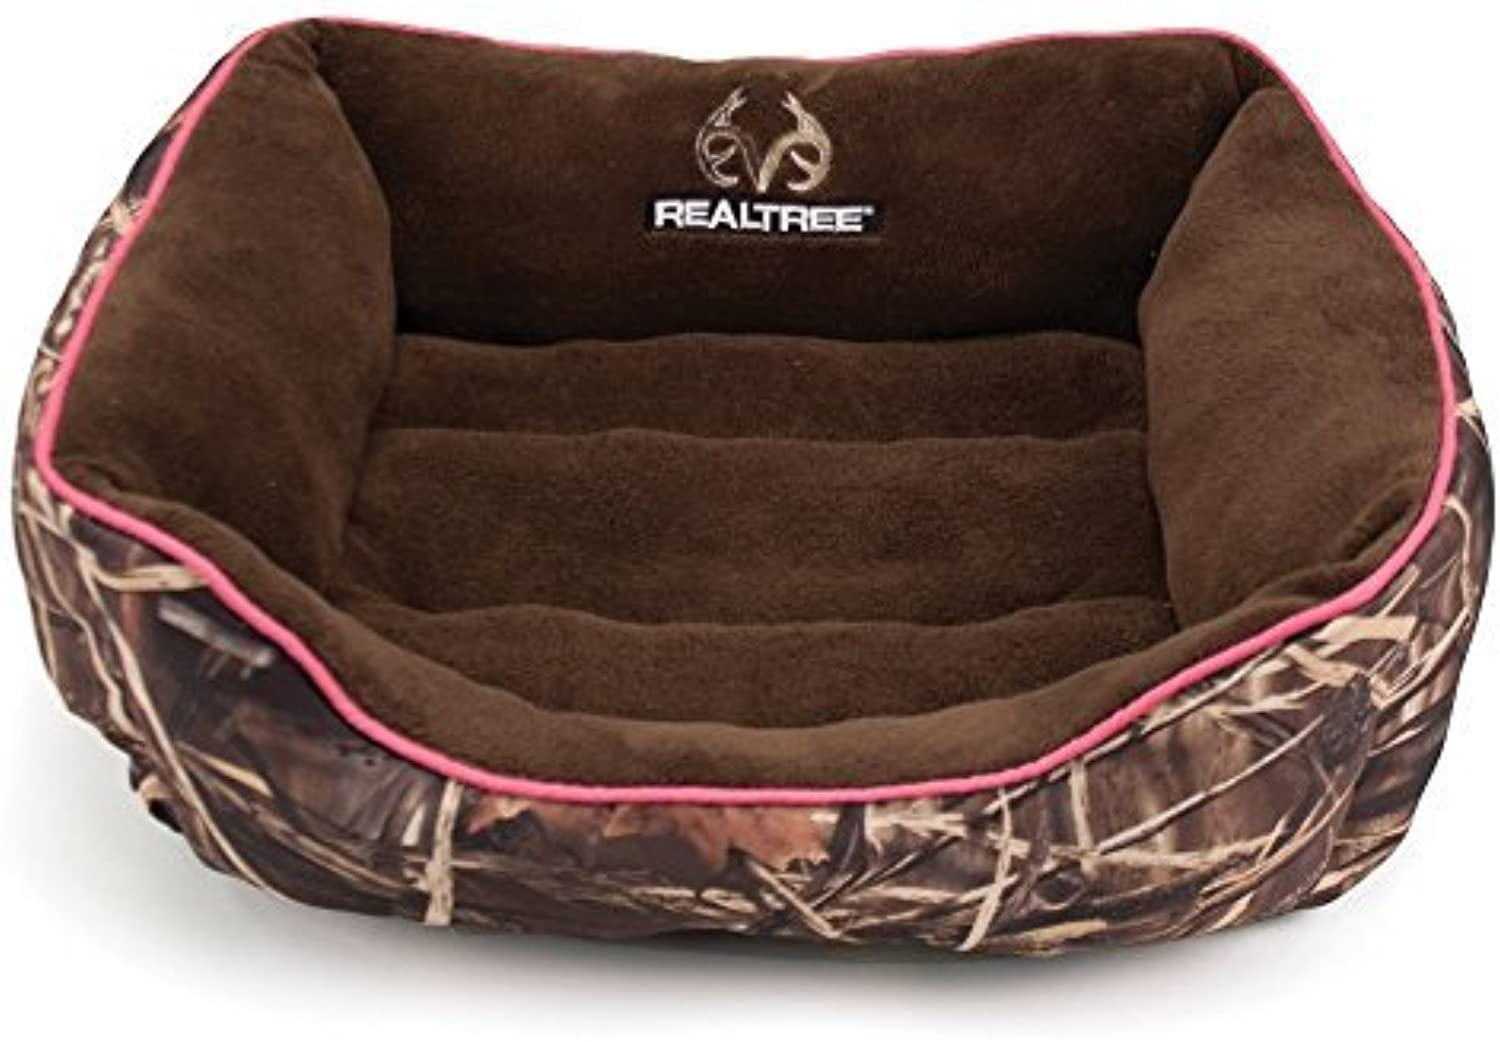 Dallas RR2125160.2 Realtree Box Bed, Camo with Pink Piping, 25 x 21 by Dallas Manufacturing Co.